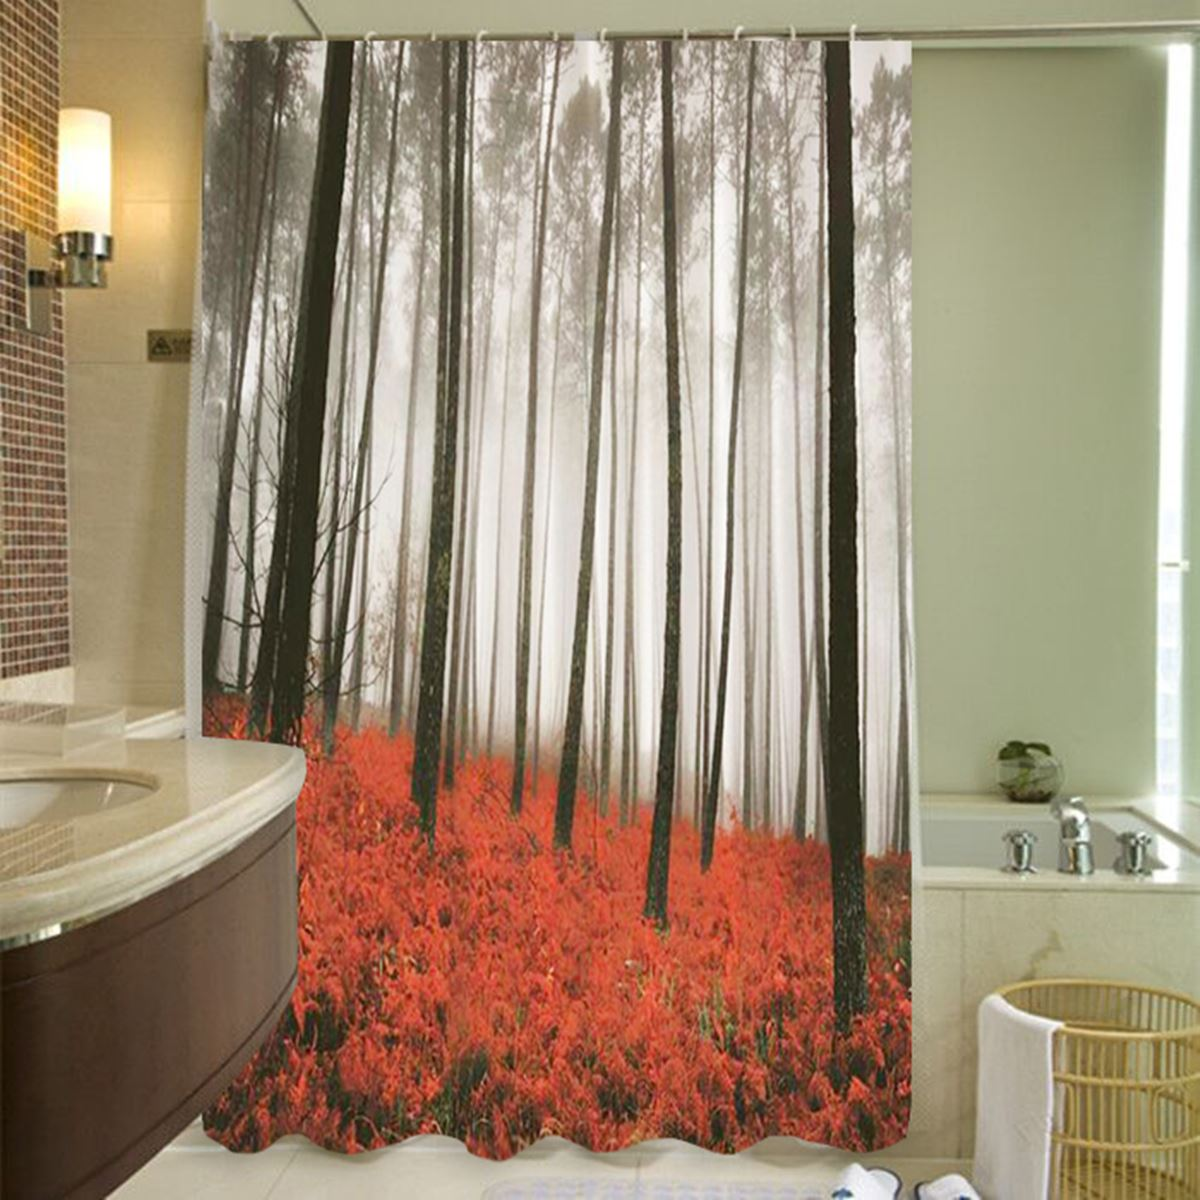 Sheer red window curtains - Red Grass Forest Polyester Shower Curtain 180x180cm Panel Sheer Bath Screen Home Bathroom Textiles Shower Cover